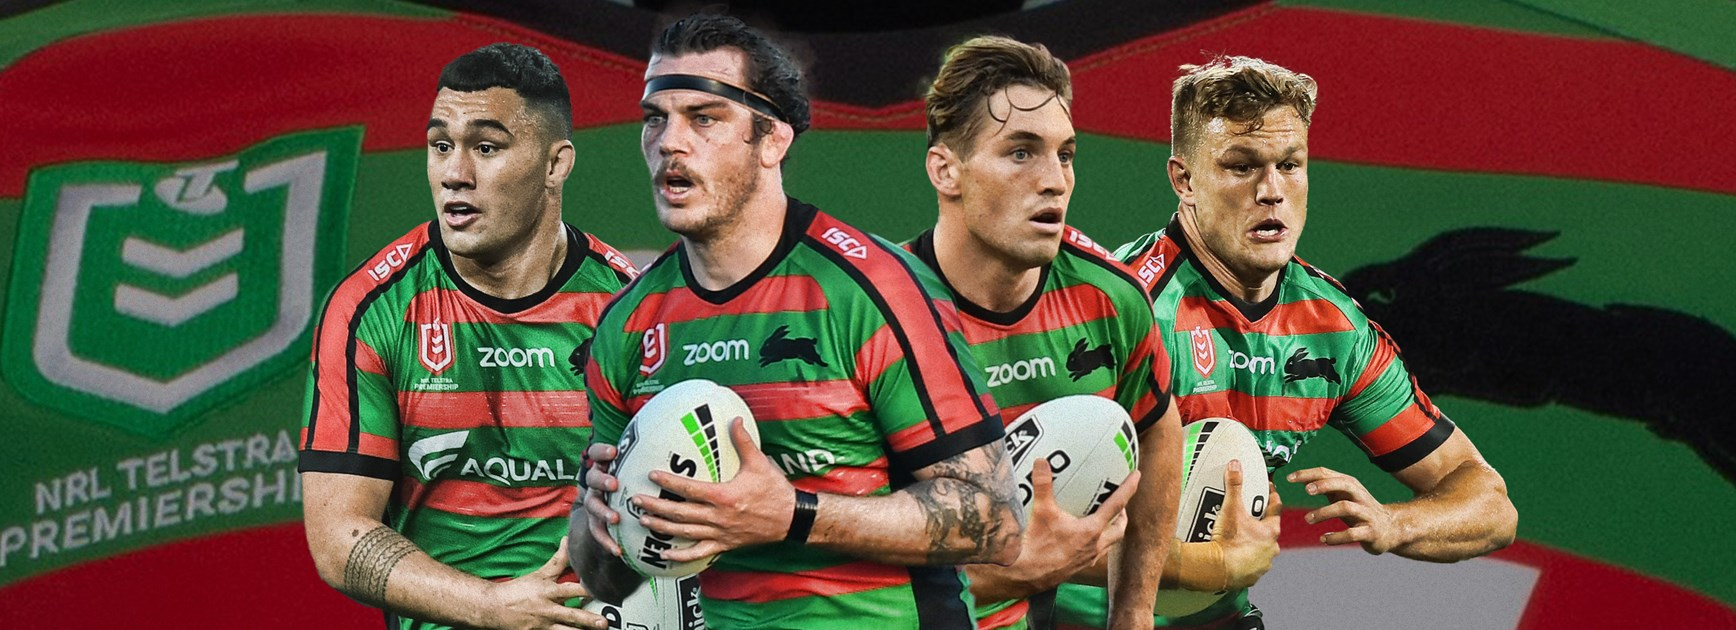 Reboot on the run: Why Rabbitohs again among title favourites